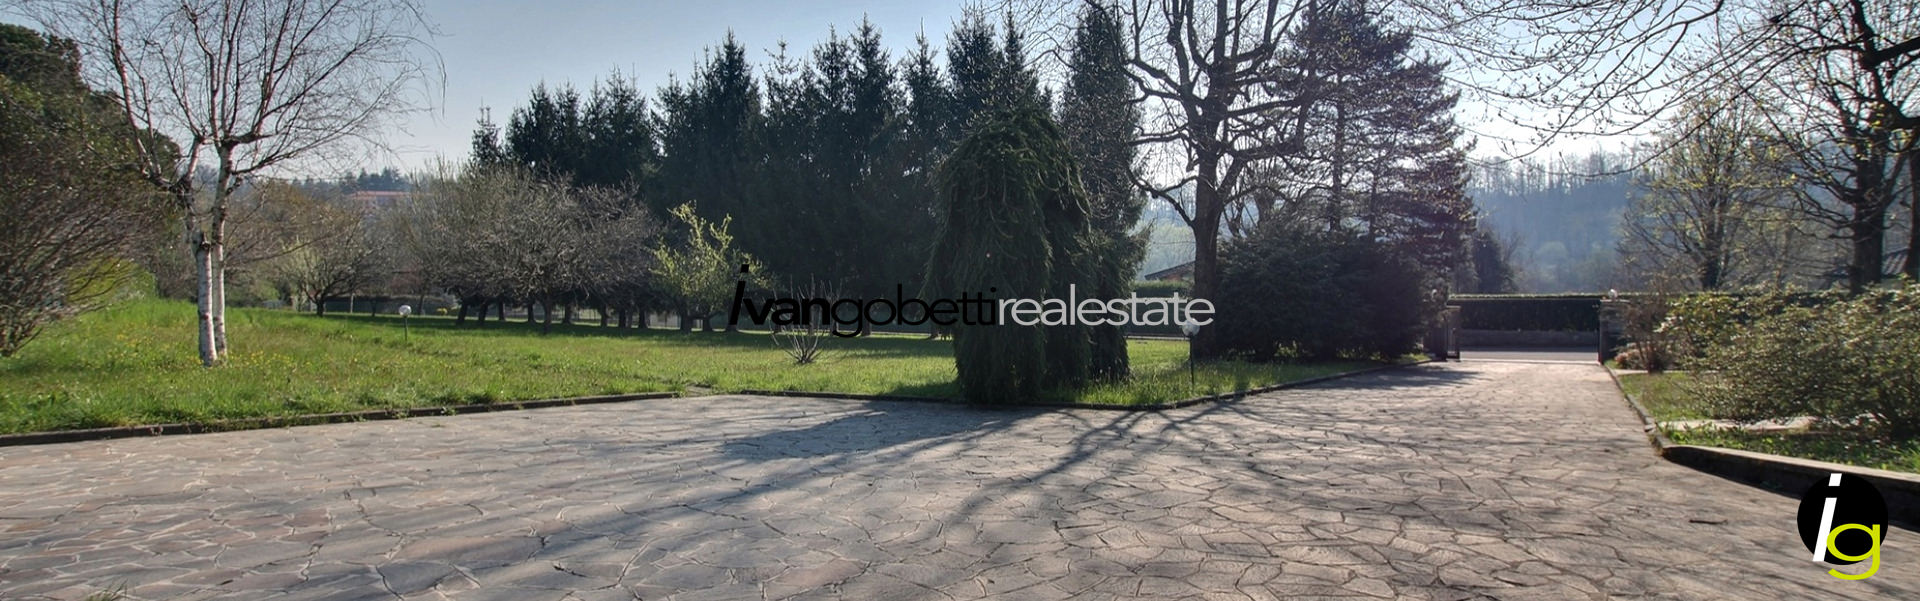 For sale building area on Lake Como Lipomo